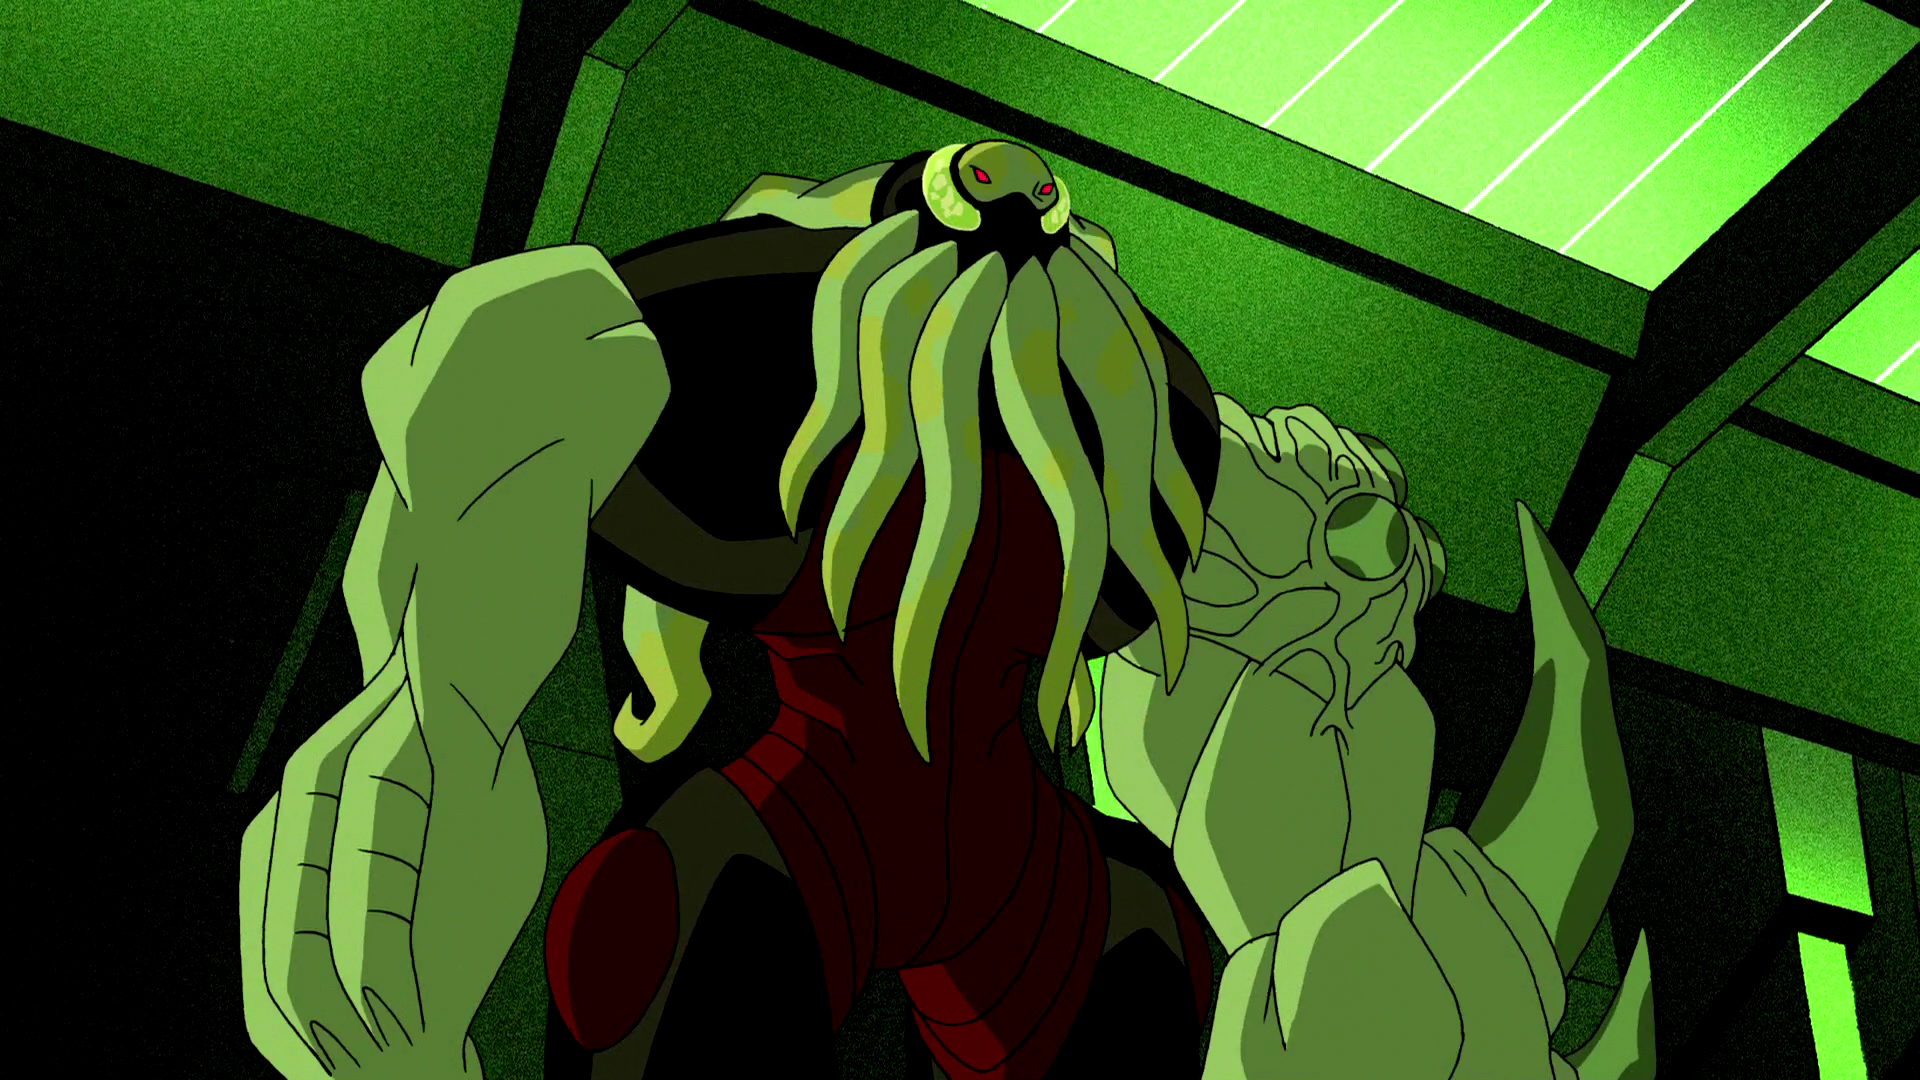 http://img2.wikia.nocookie.net/__cb20120730162819/ben10/images/1/1c/Vilgax_future.png